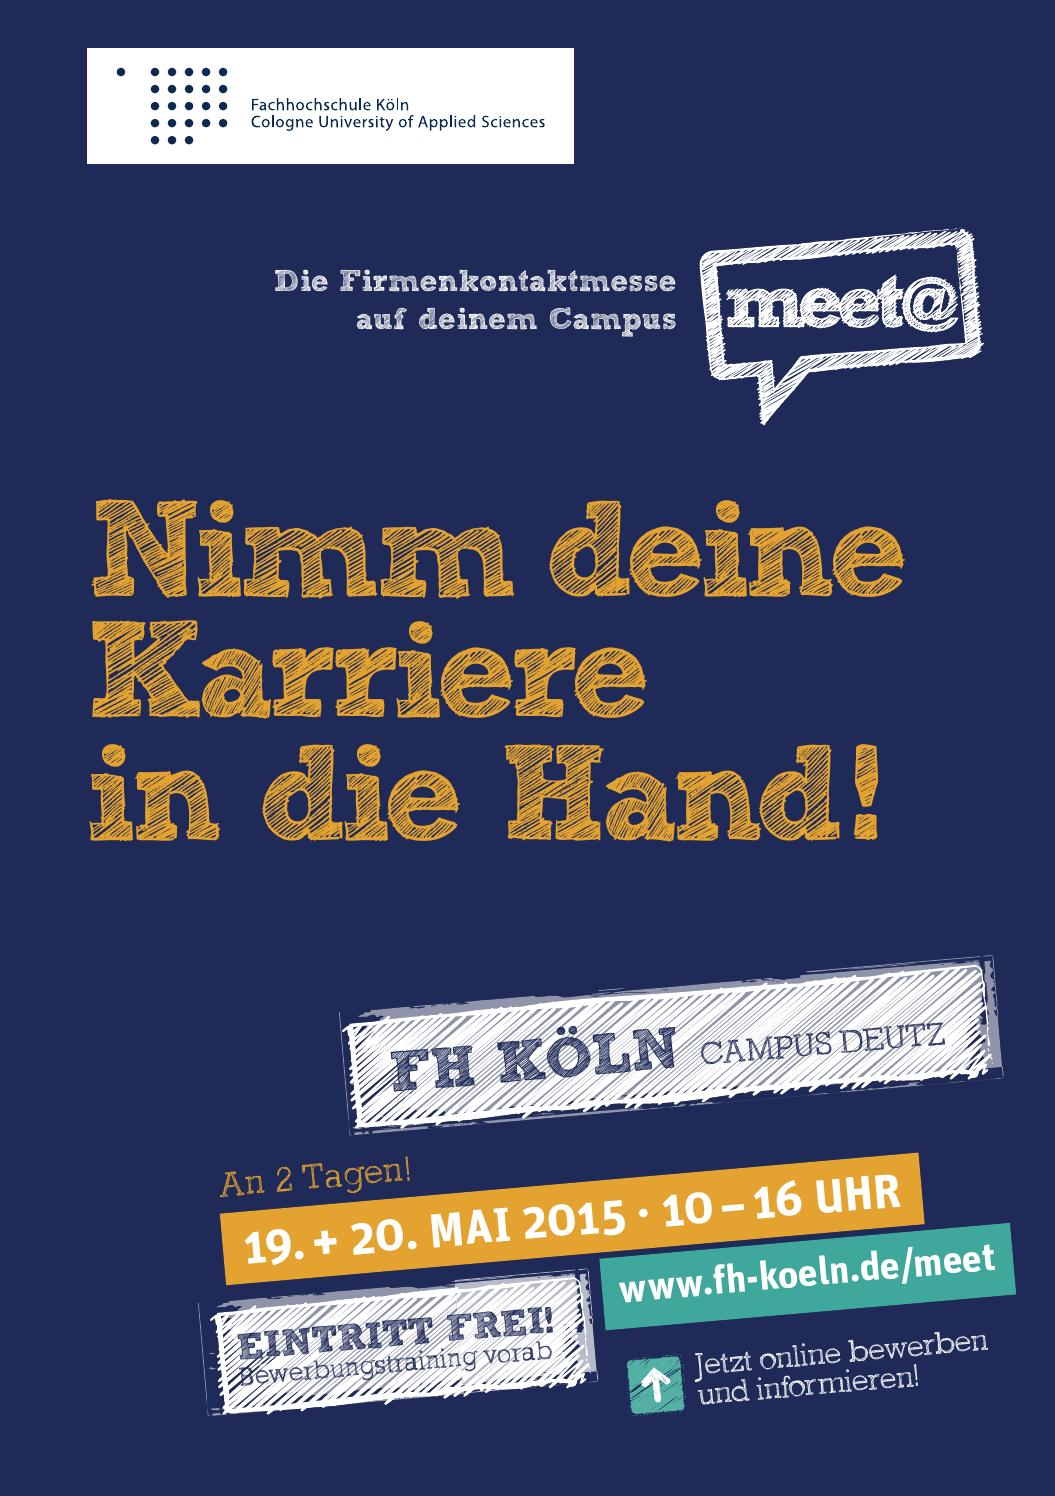 meet fh koeln messeguide by iqb career services ag issuu - Uni Koln Online Bewerbung